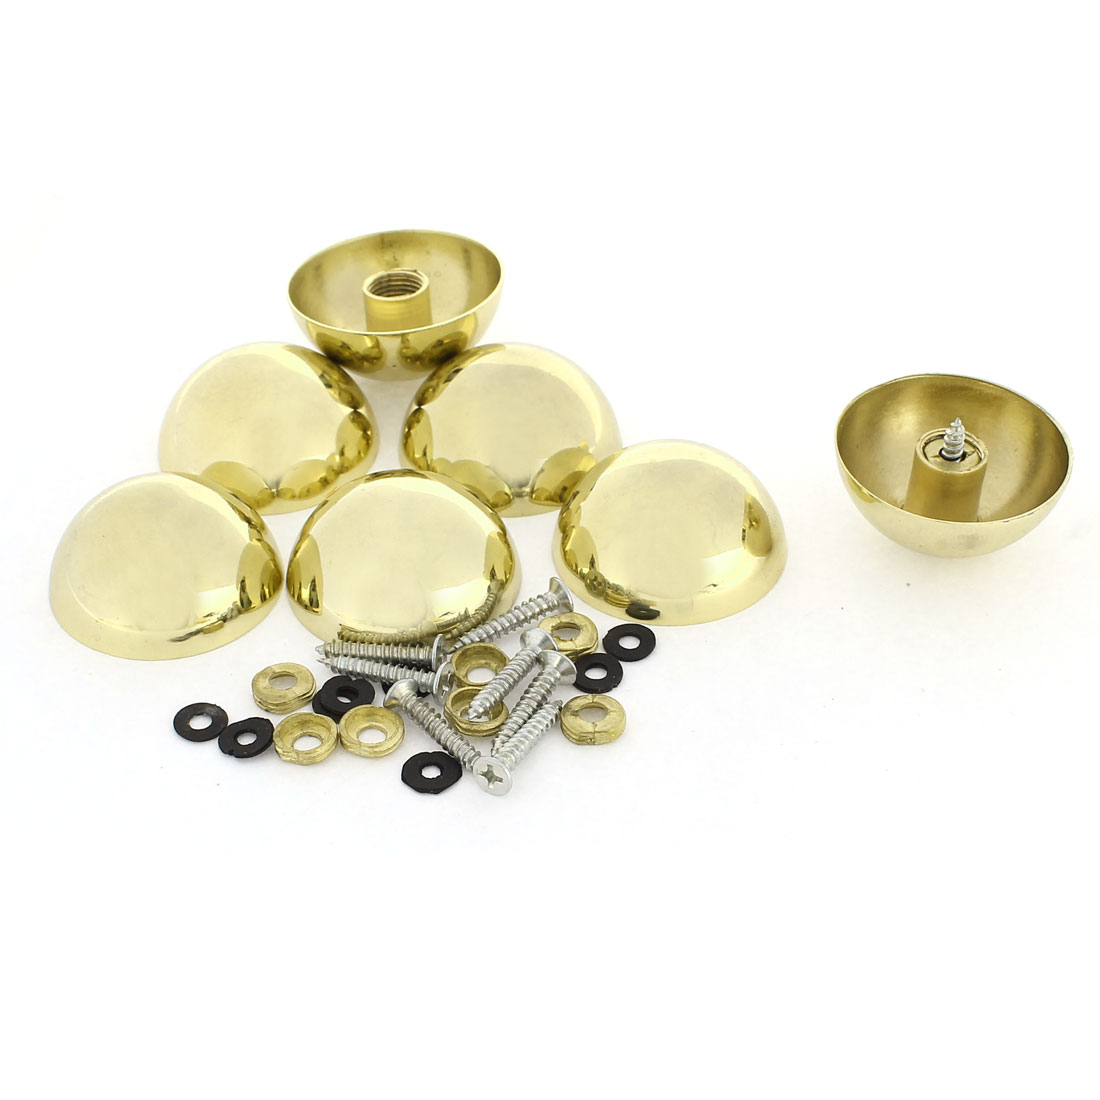 8 Pcs 37mm Dia 16mm Height Zinc Alloy Dome Mirror Screw Cap Fittings Gold Tone